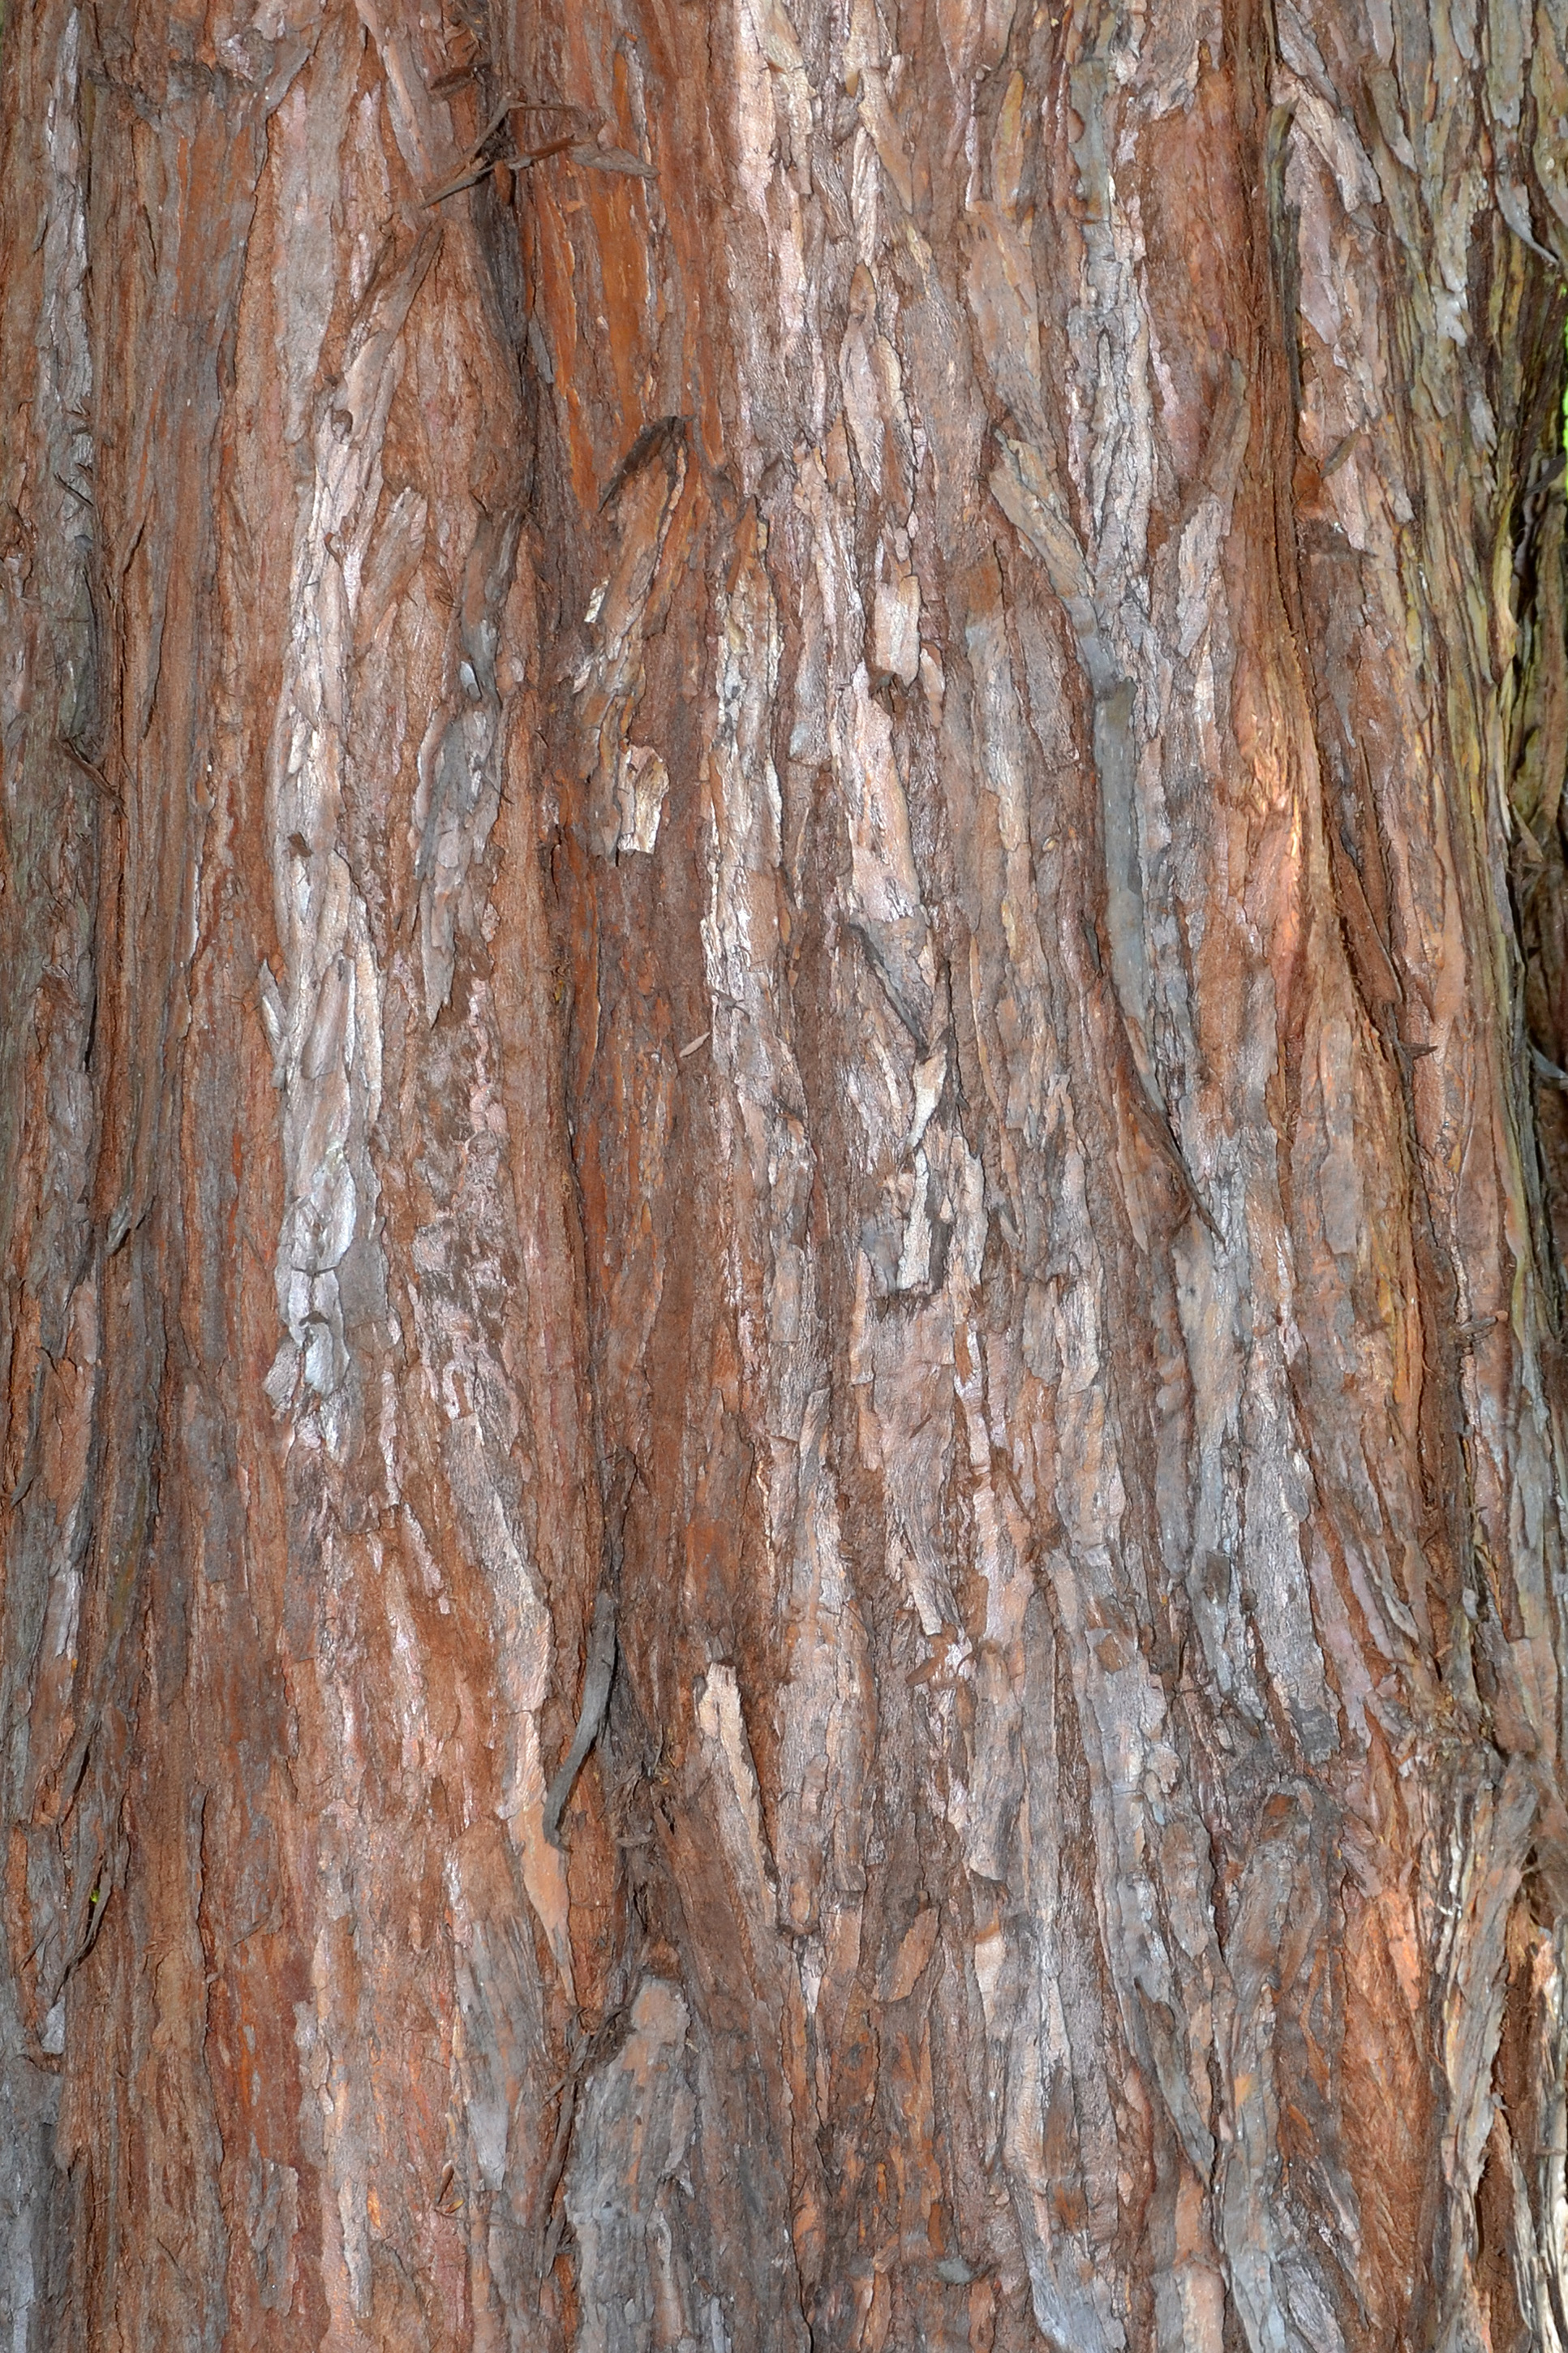 Free photo: Bark of giant redwood - Texture, Timber, Tree